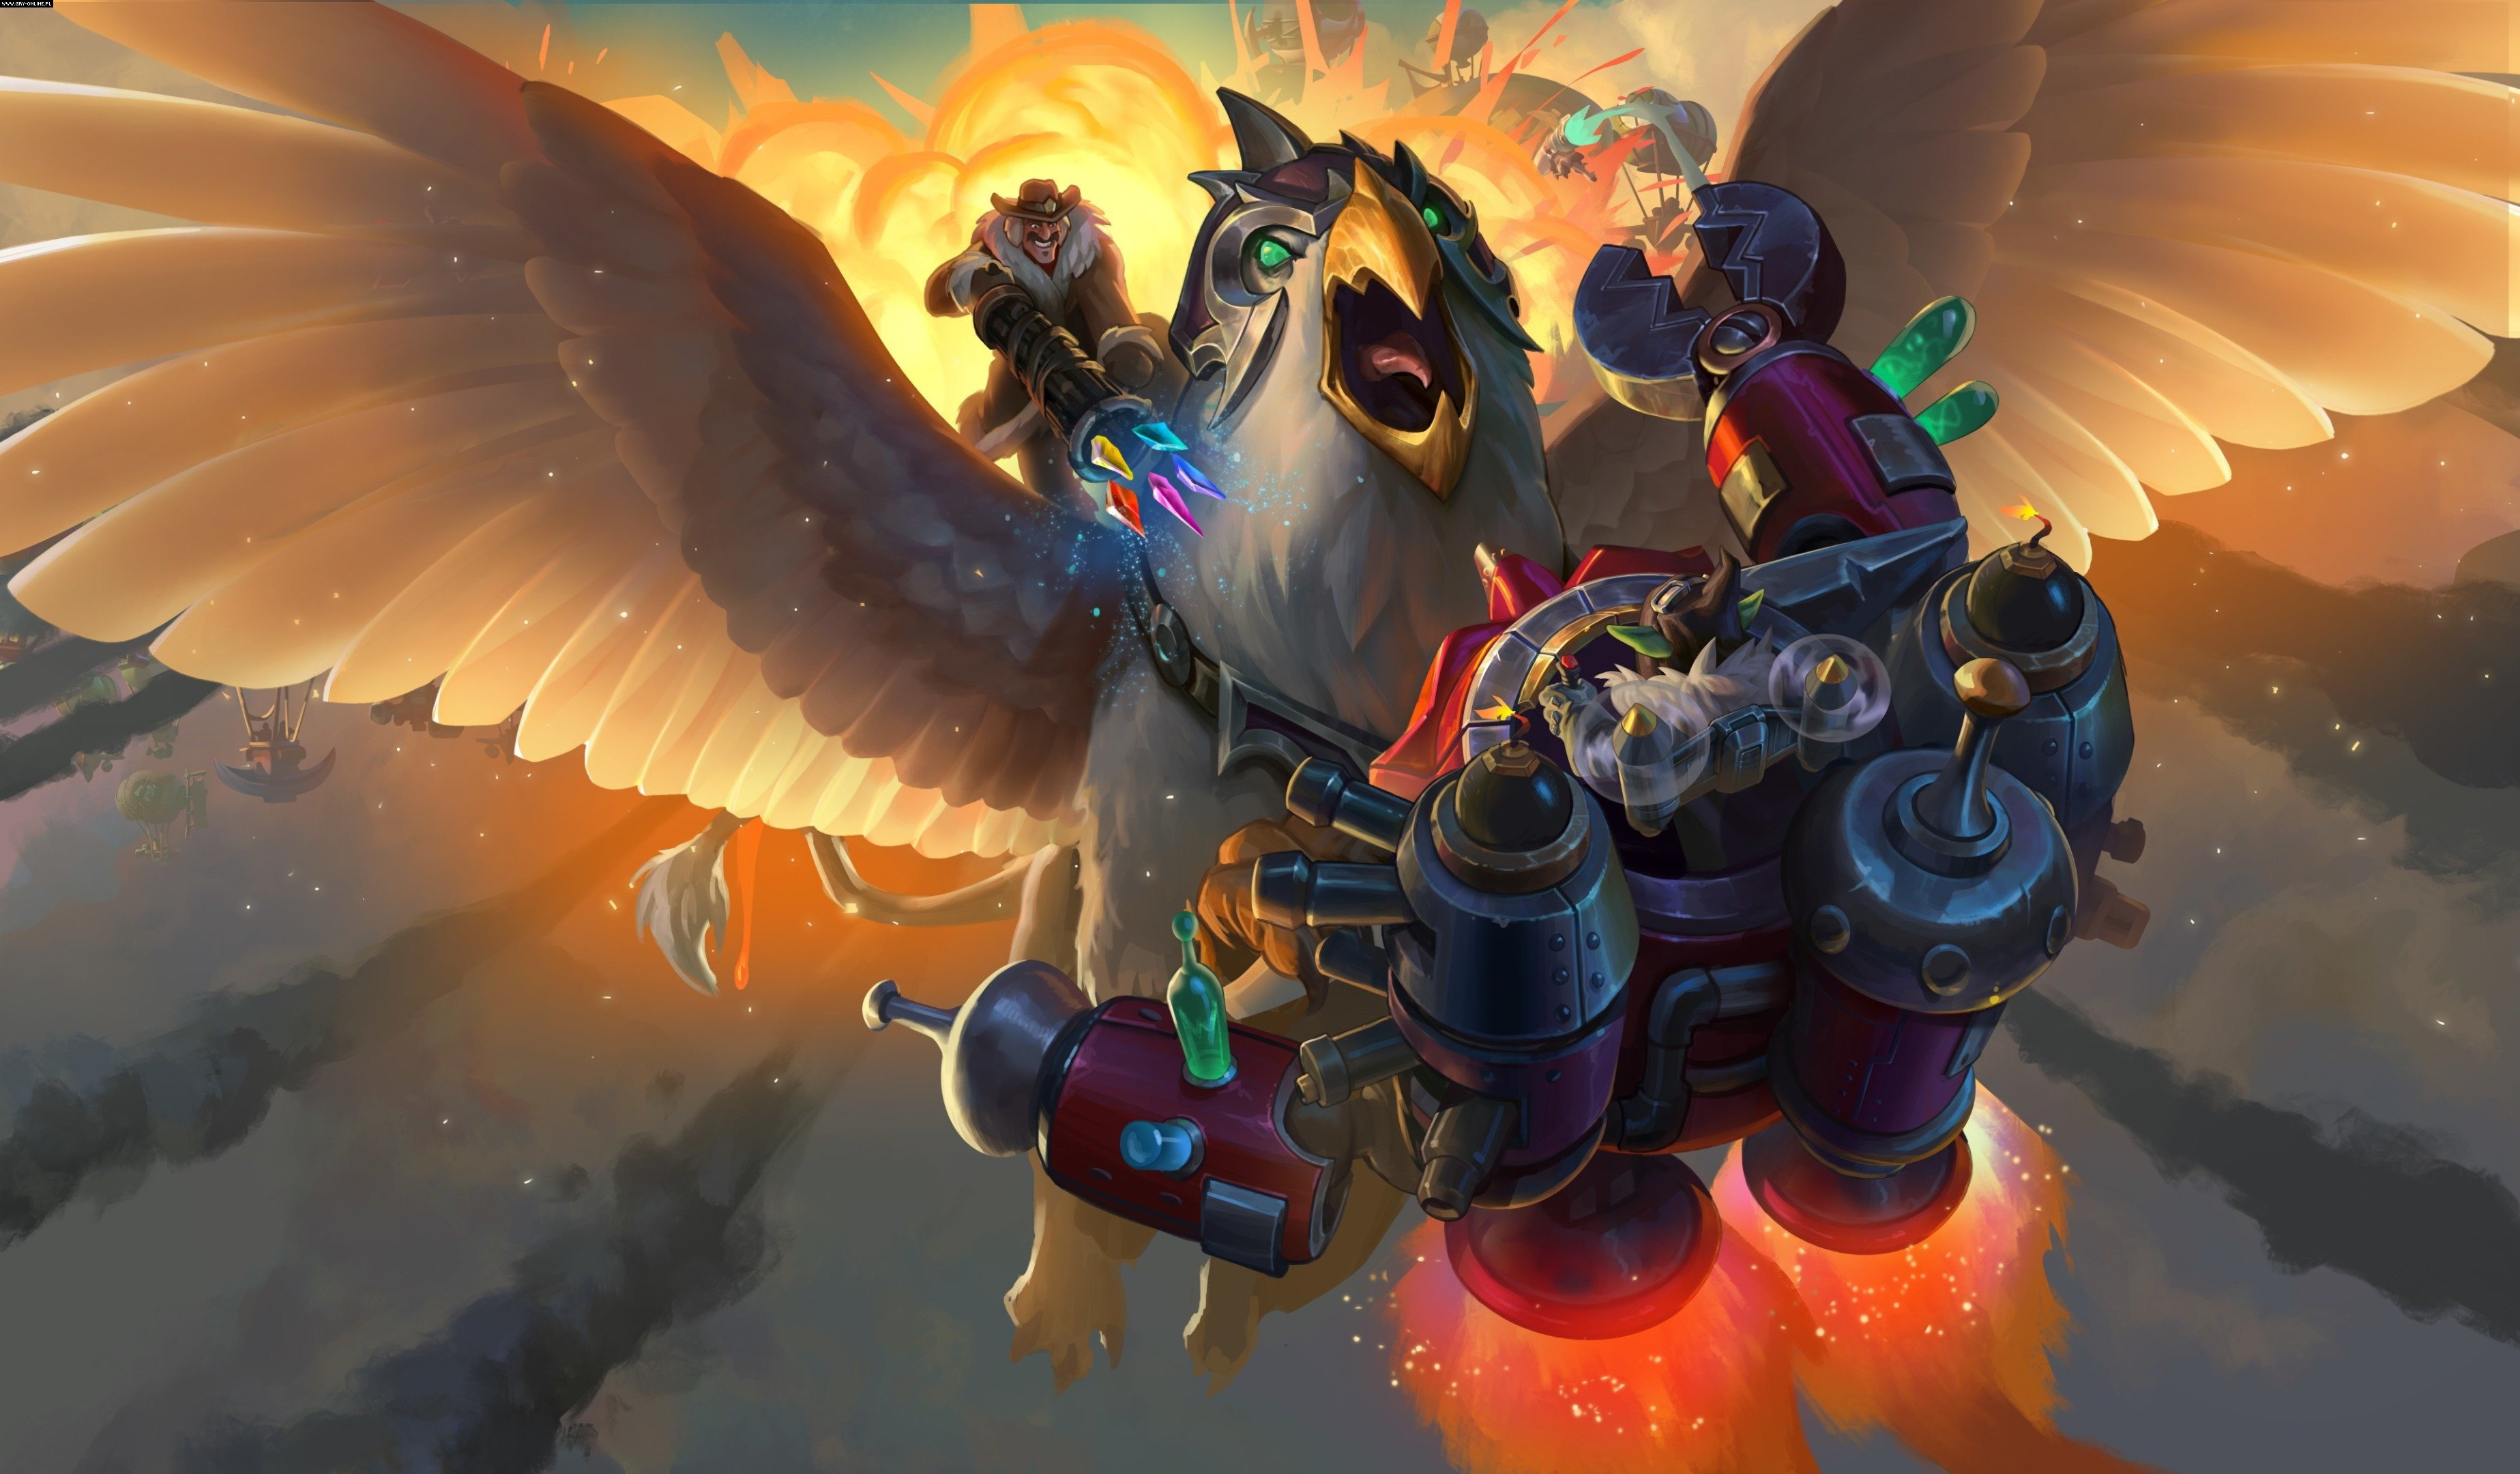 Hearthstone: Descent of Dragons PC, iOS, AND Games Image 8/18, Blizzard Entertainment